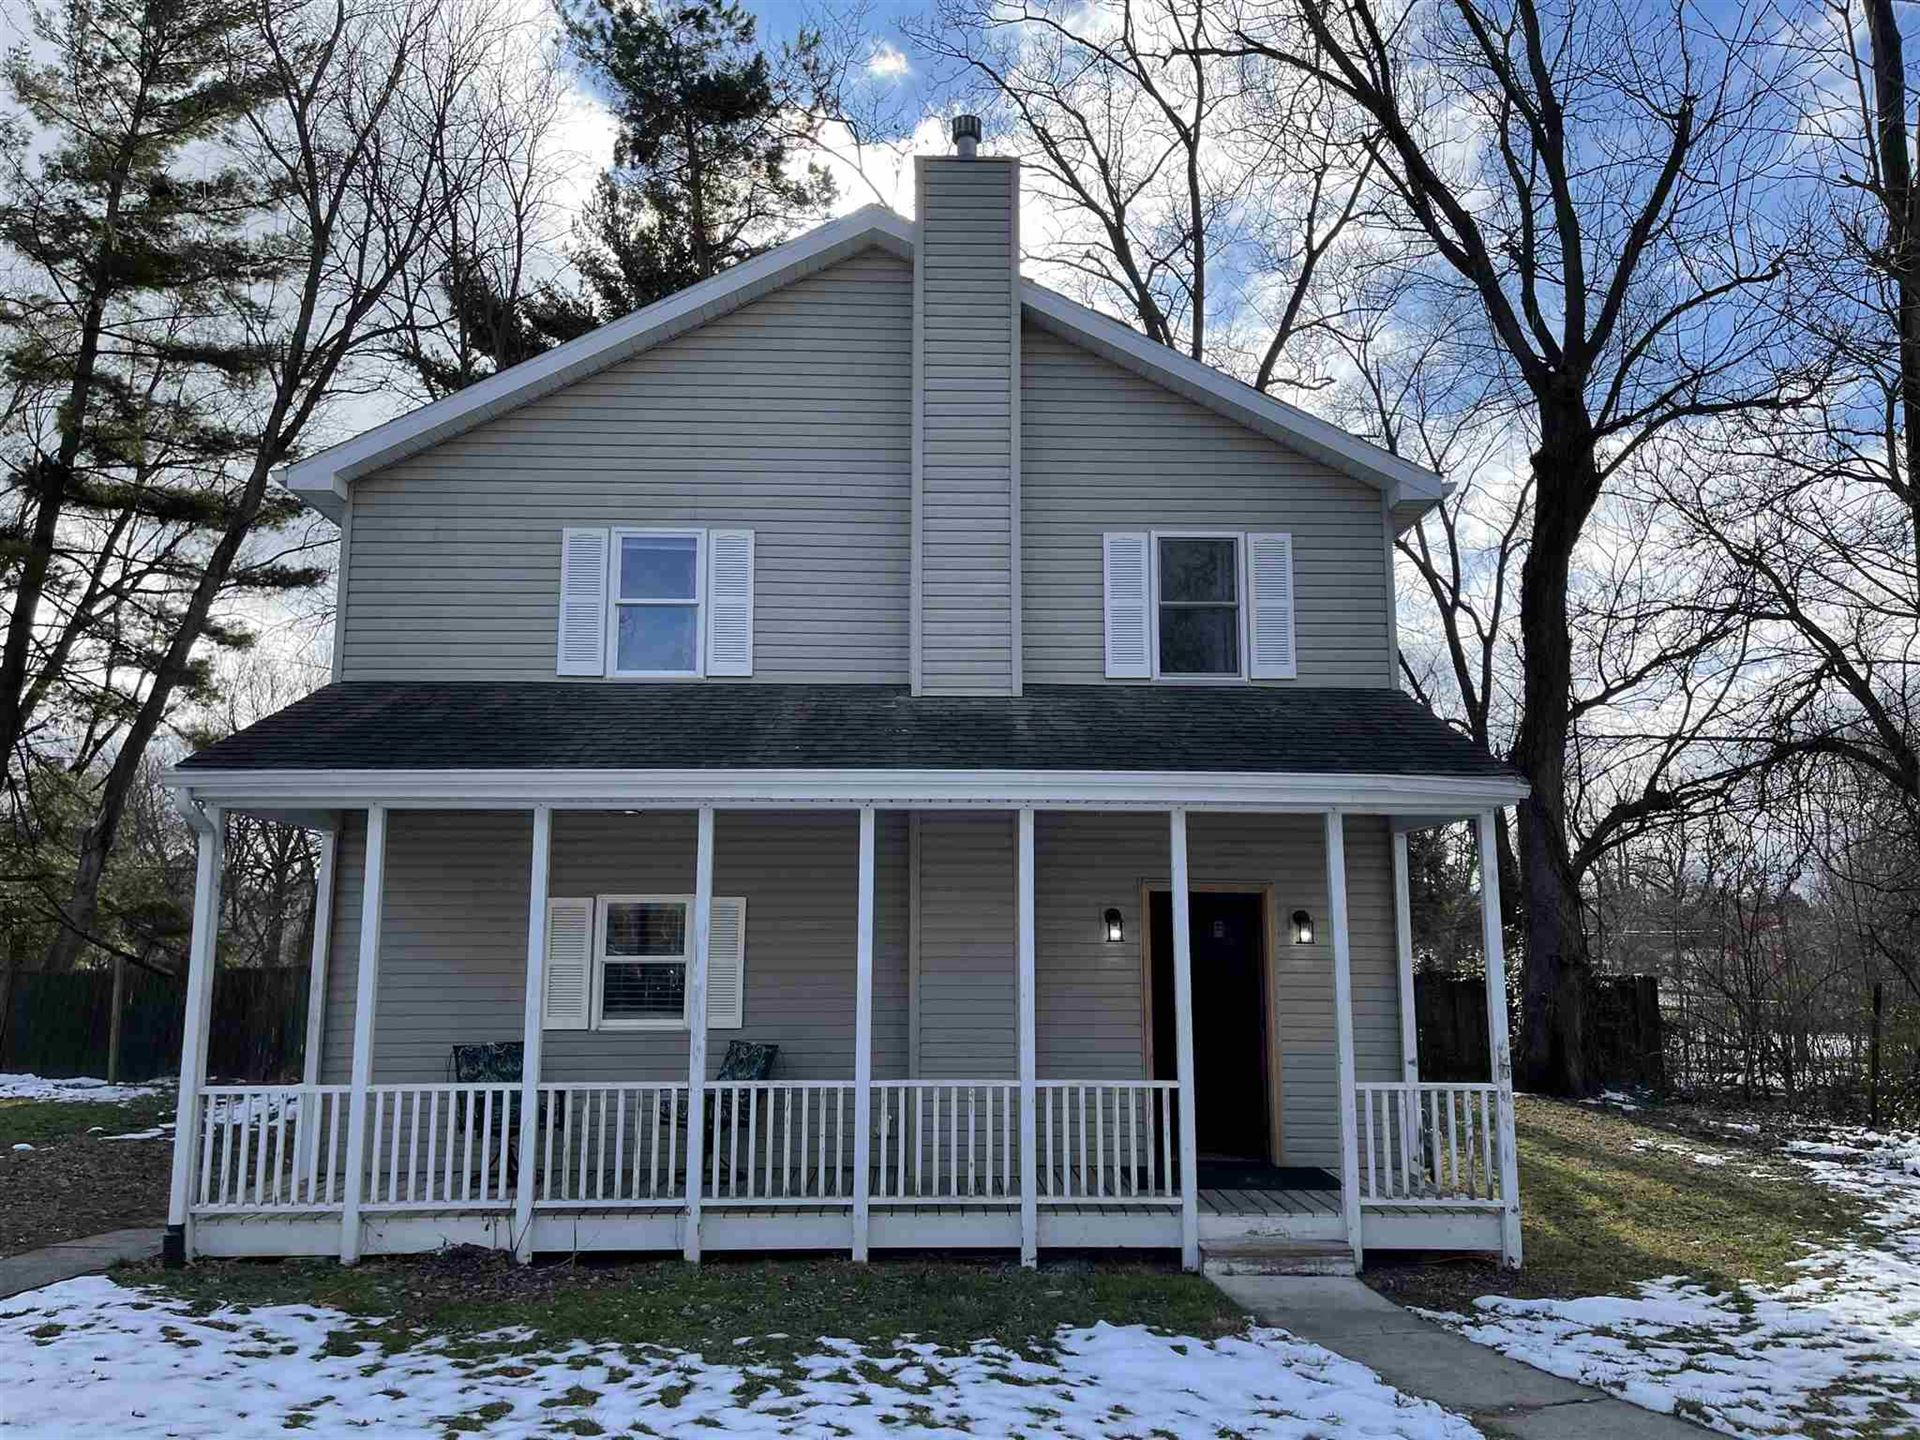 228 W Pendle Street, South Bend, IN 46637 - #: 202100806